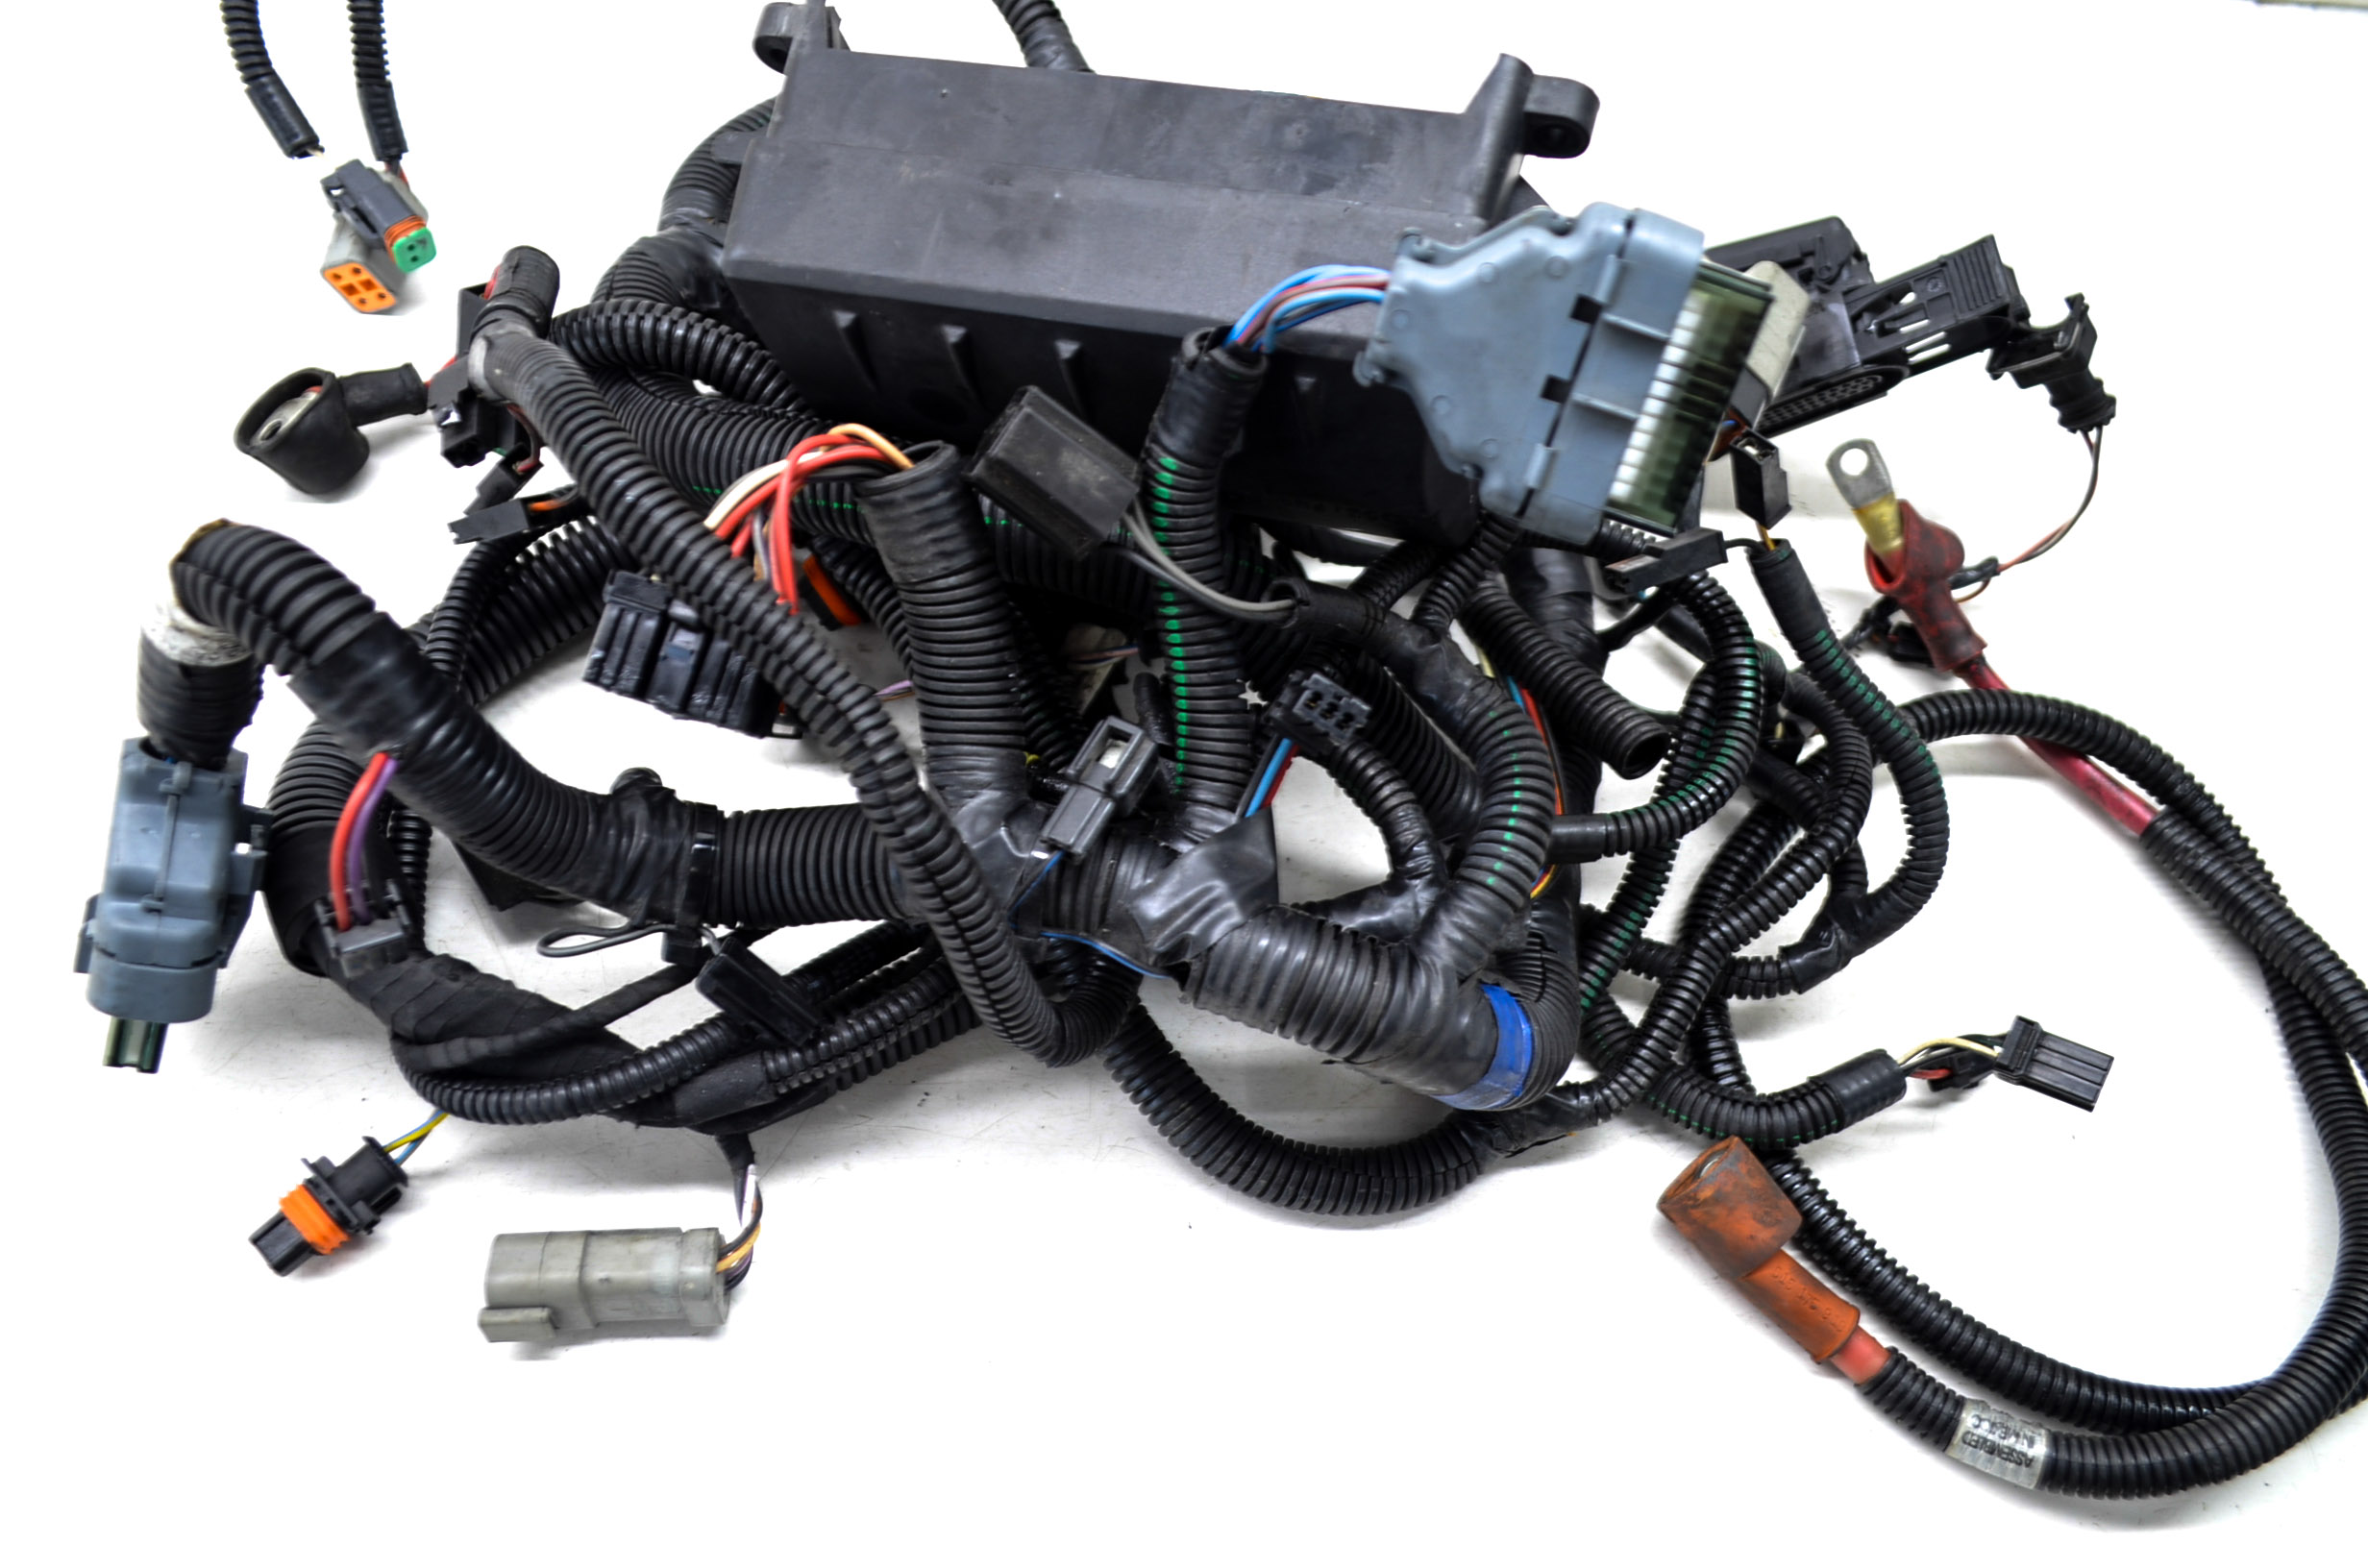 1883 12 05 ski doo mxz 600 renegade ho wire harness electrical wiring ebay 2016 Ski-Doo Renegade X Colors at gsmx.co